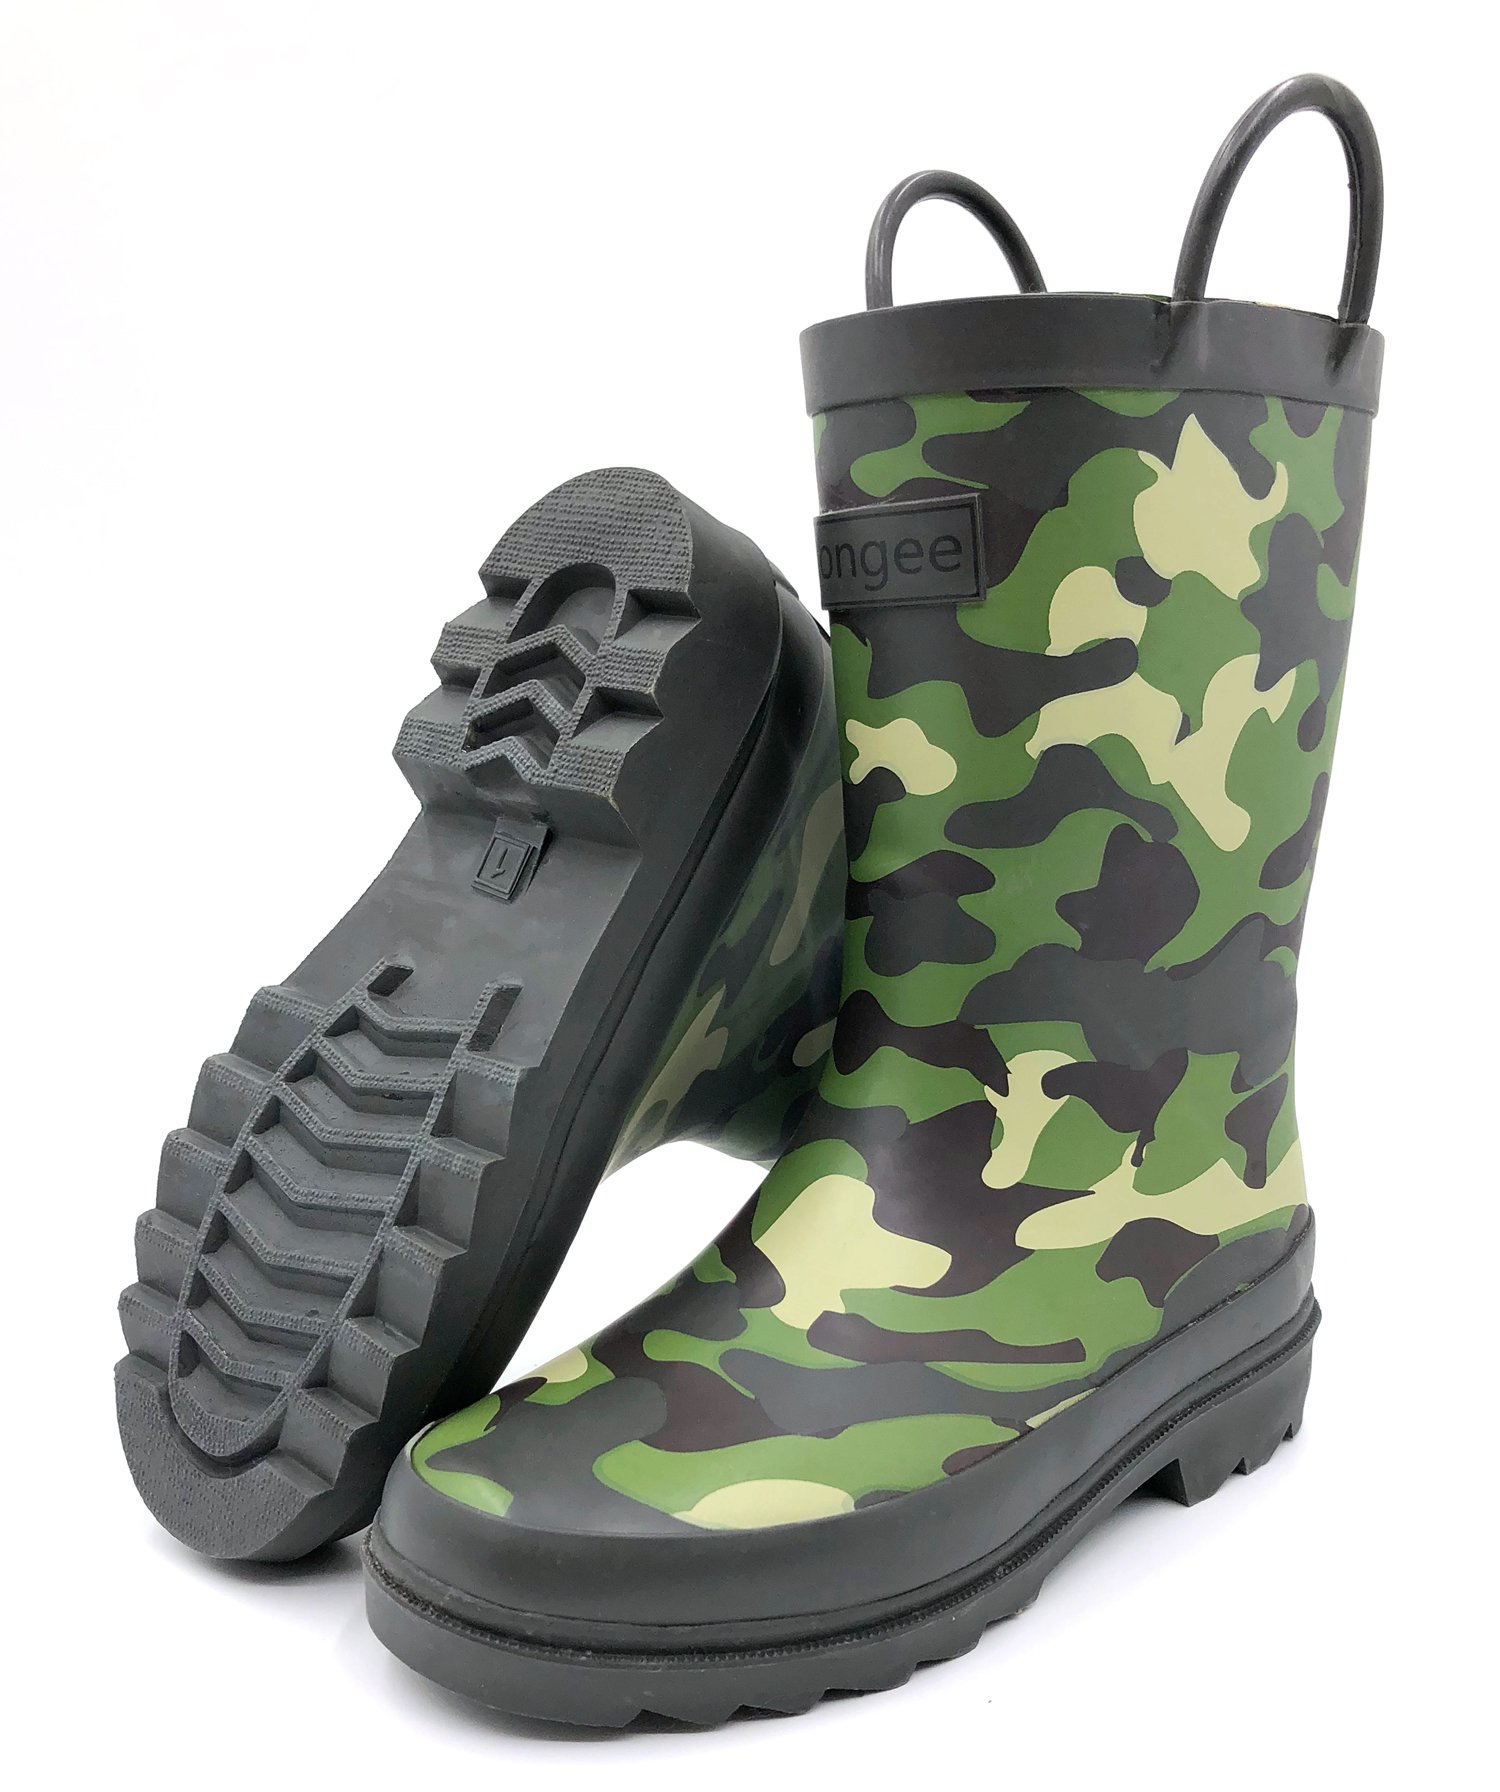 Rongee Camouflage Toddler Little Boys Girls Kids Rubber Rain Boots with Handles and Oxford Bag Packed (7M US Toddler)